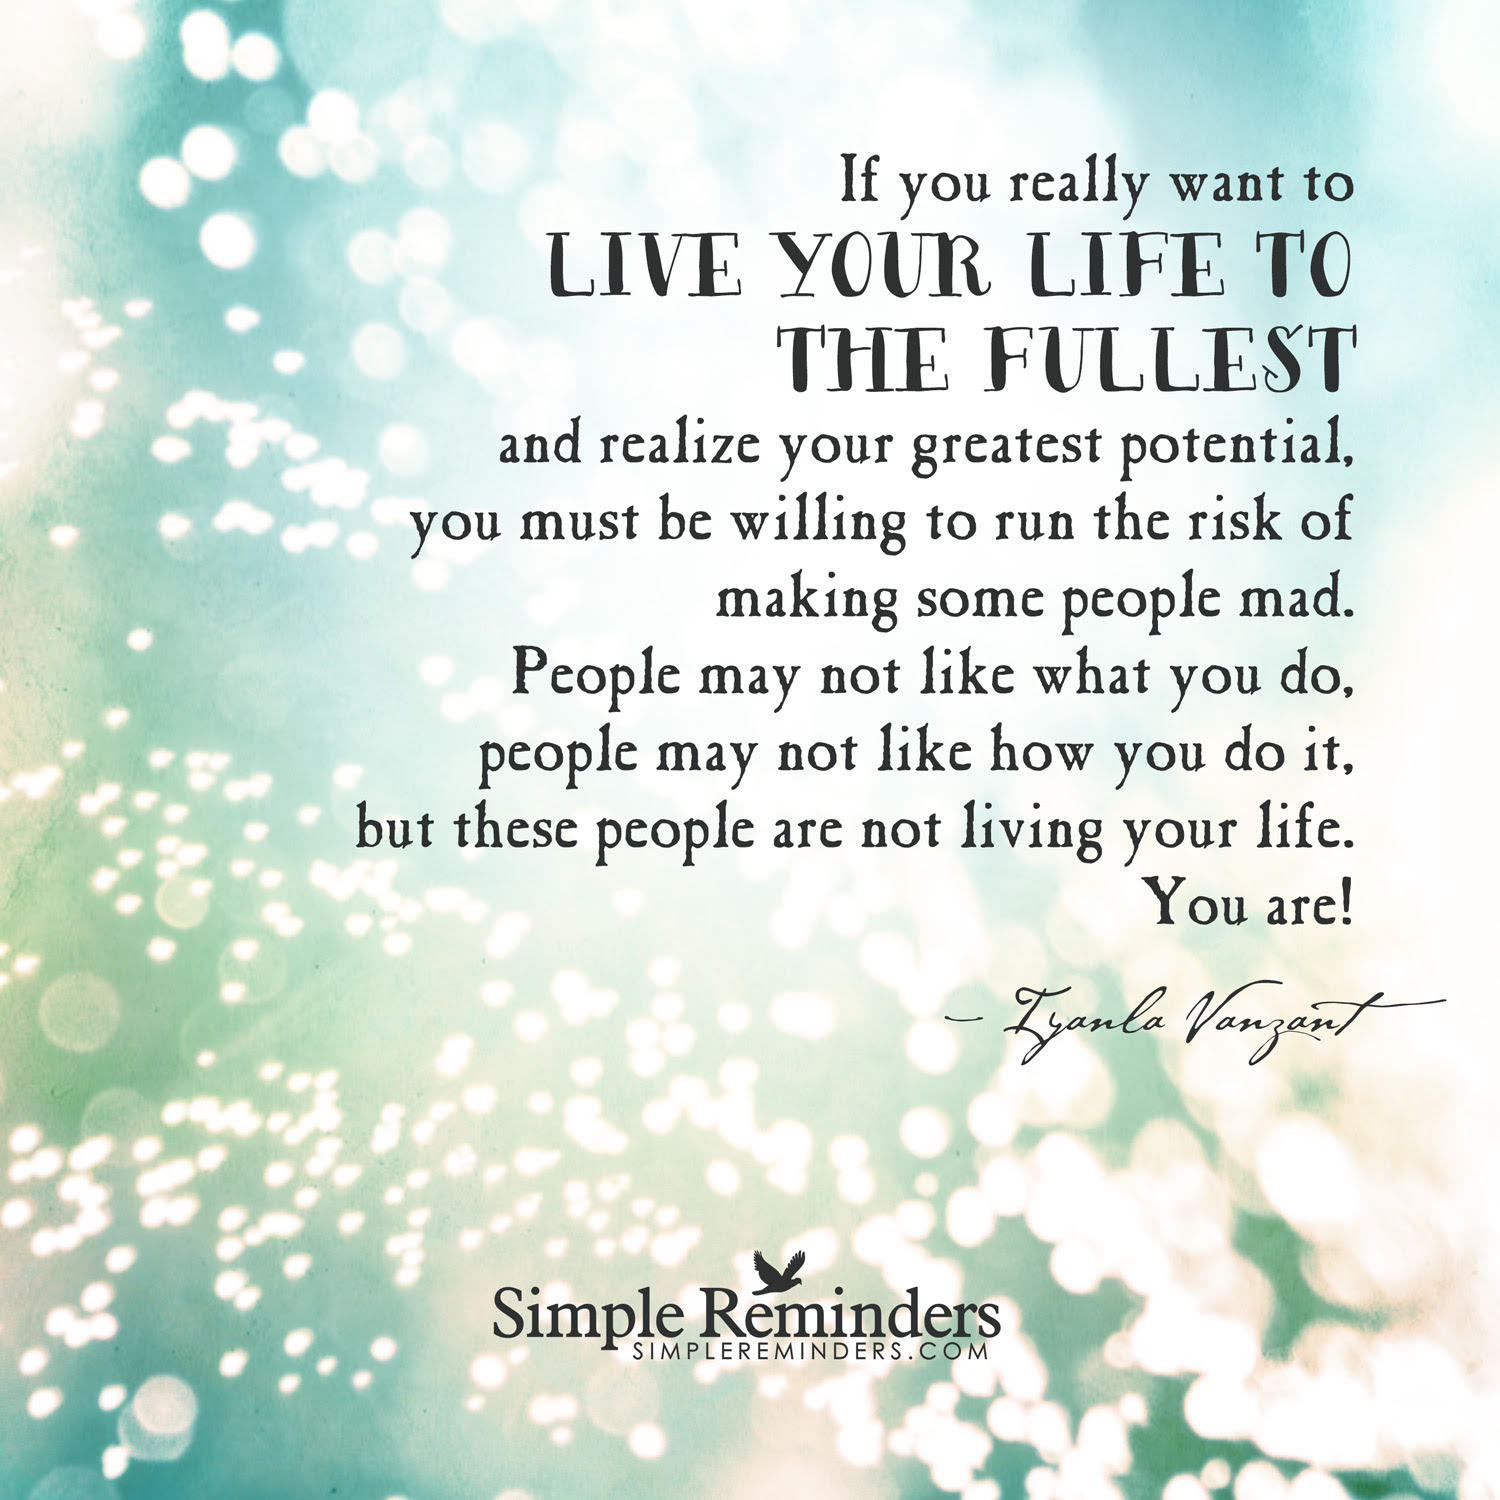 Quotes About Live Life To Its Fullest 17 Quotes